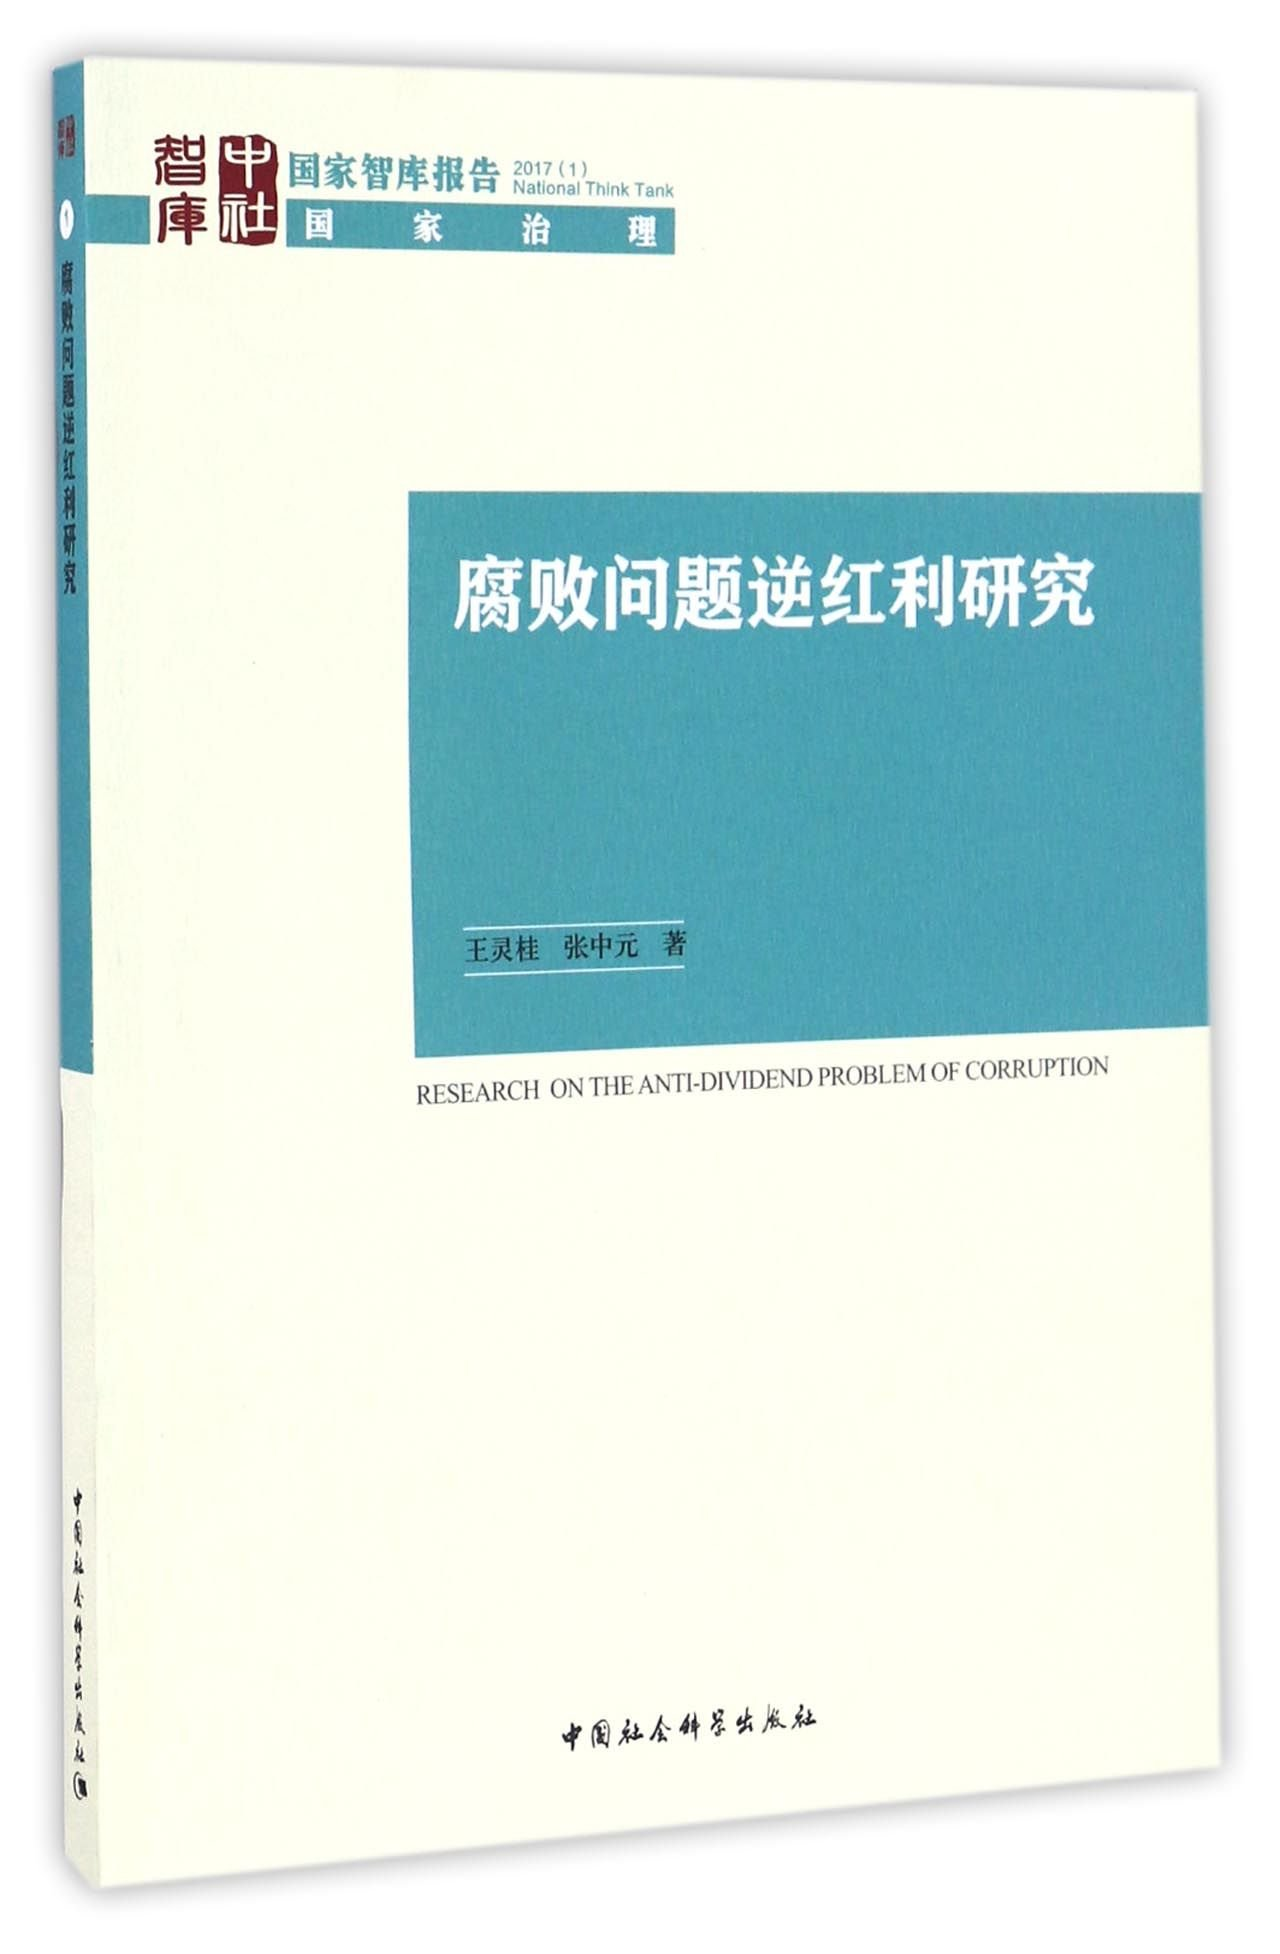 Read Online Research on the Anti-Dividend Problem of Corruption (2017) (Chinese Edition) PDF